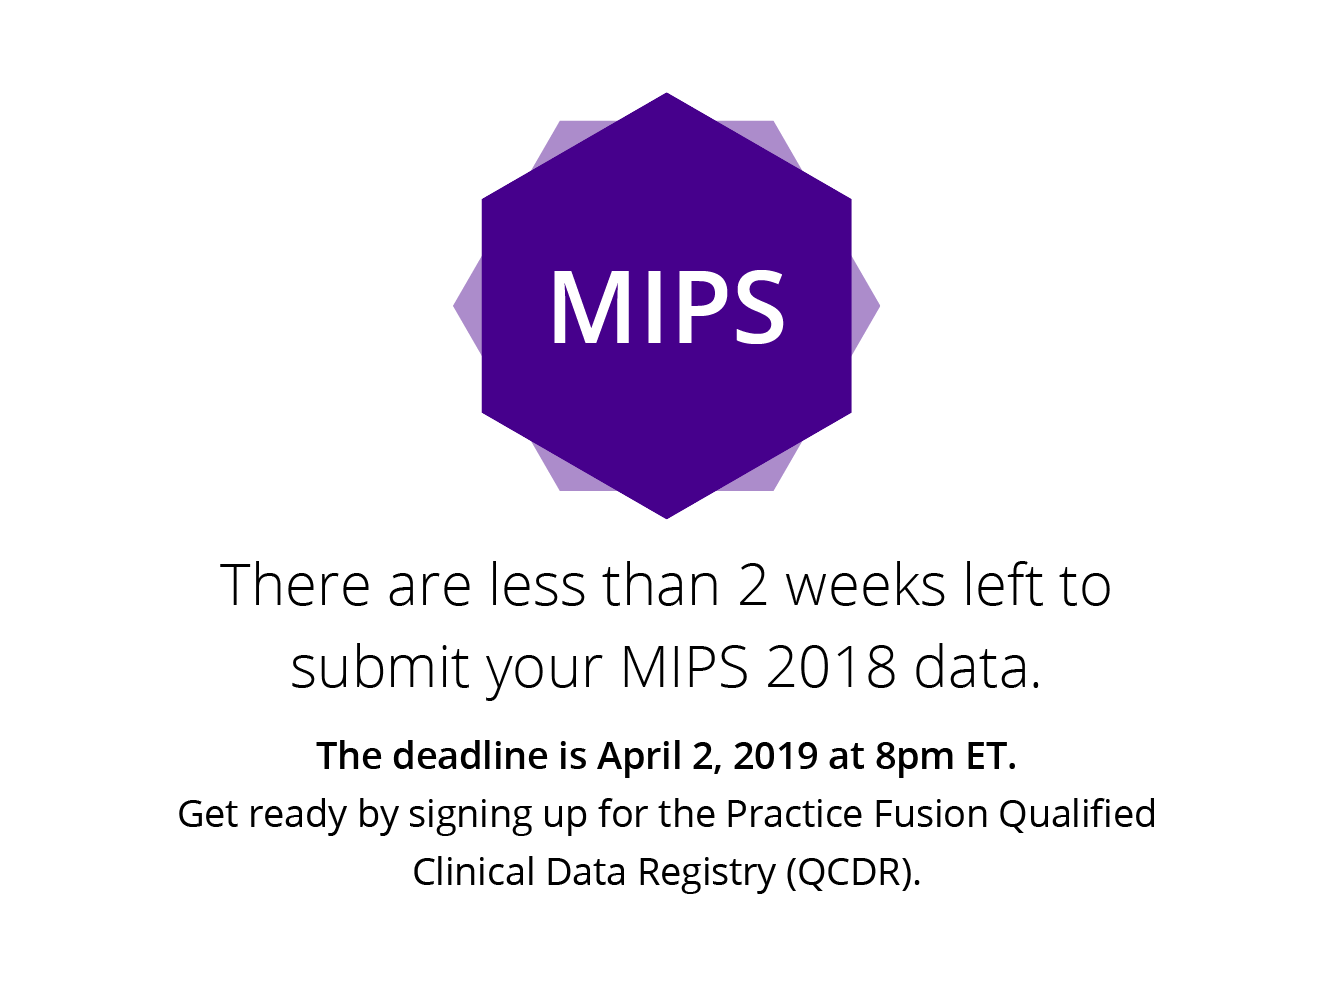 There are less than 2 weeks left to submit your MIPS 2018 data. get ready by signing up for the Practice Fusion Qualified Clinical Data Registry (QCDR). Register for a MIPS reporting webinar to learn more.